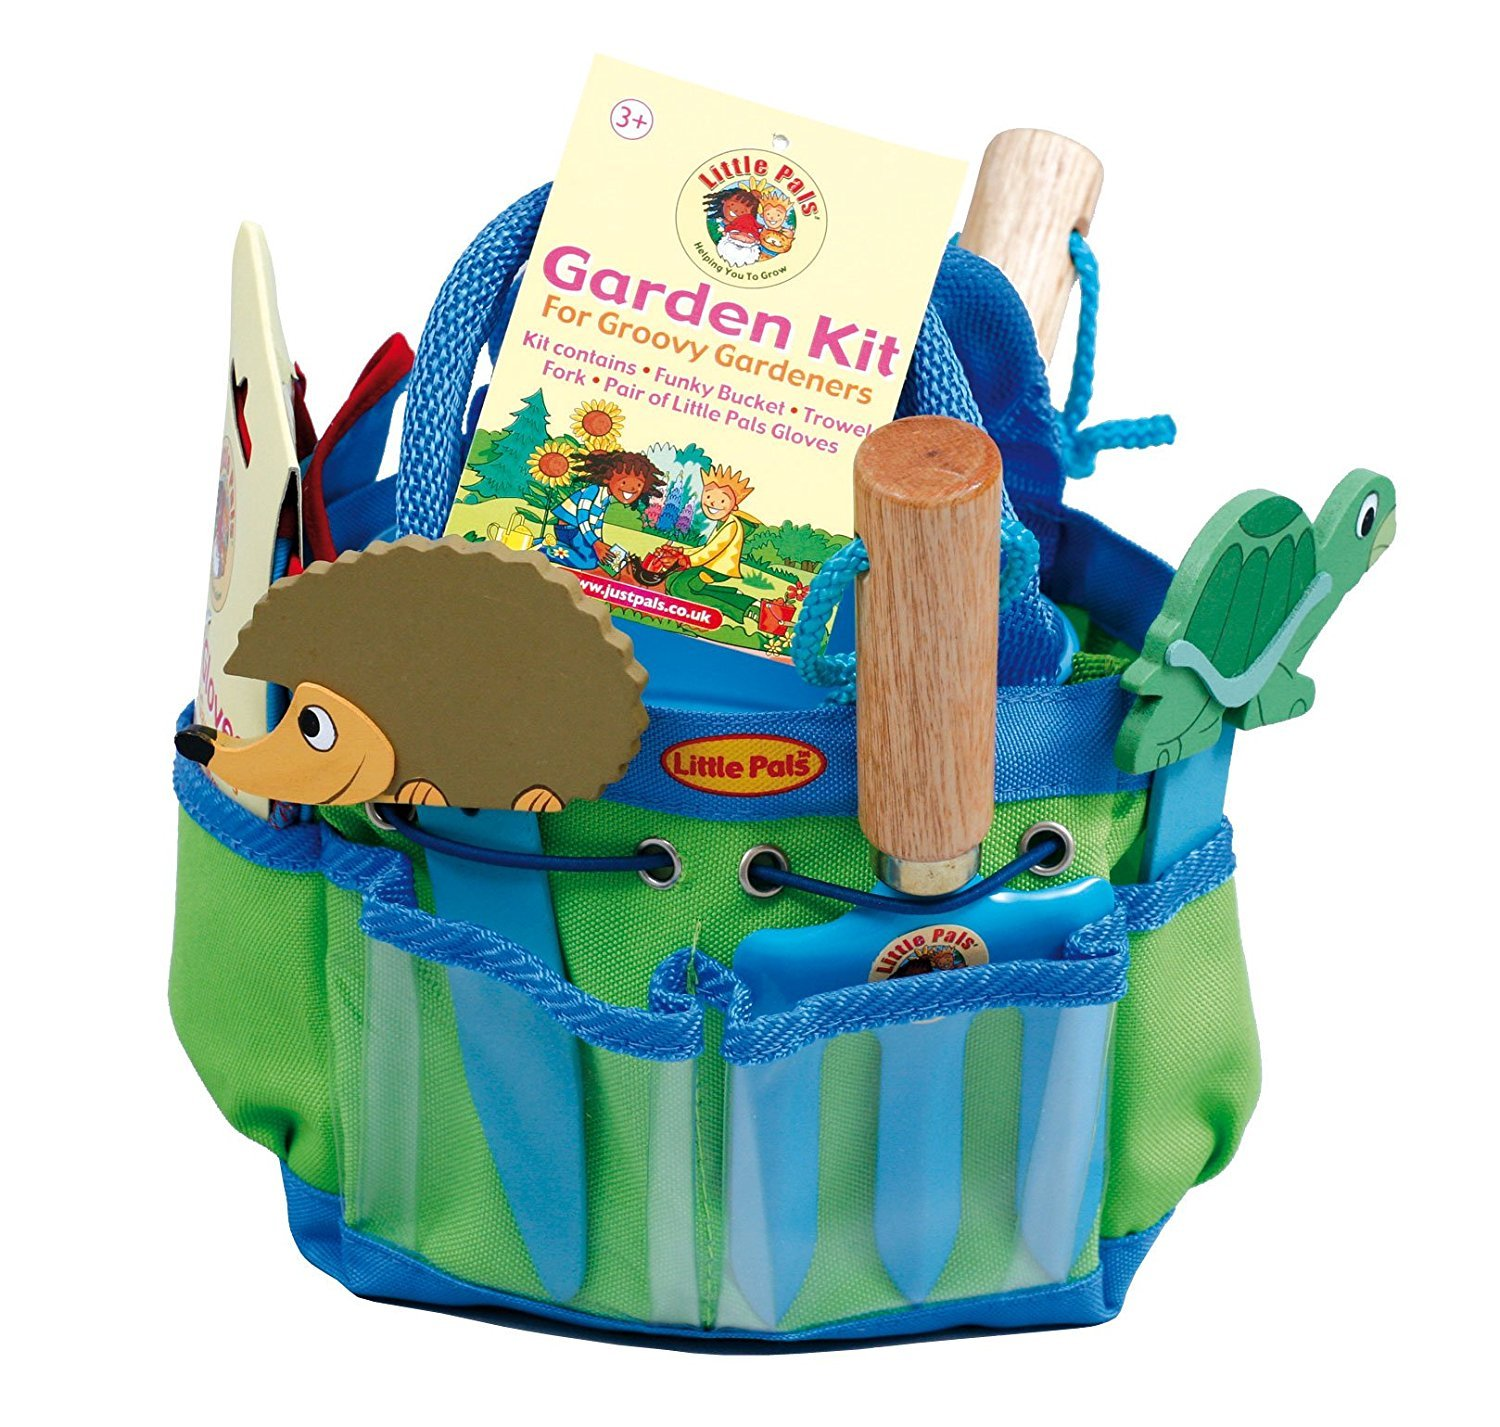 Childrens Gardening Tools Kit Blue Amazoncouk Garden Outdoors